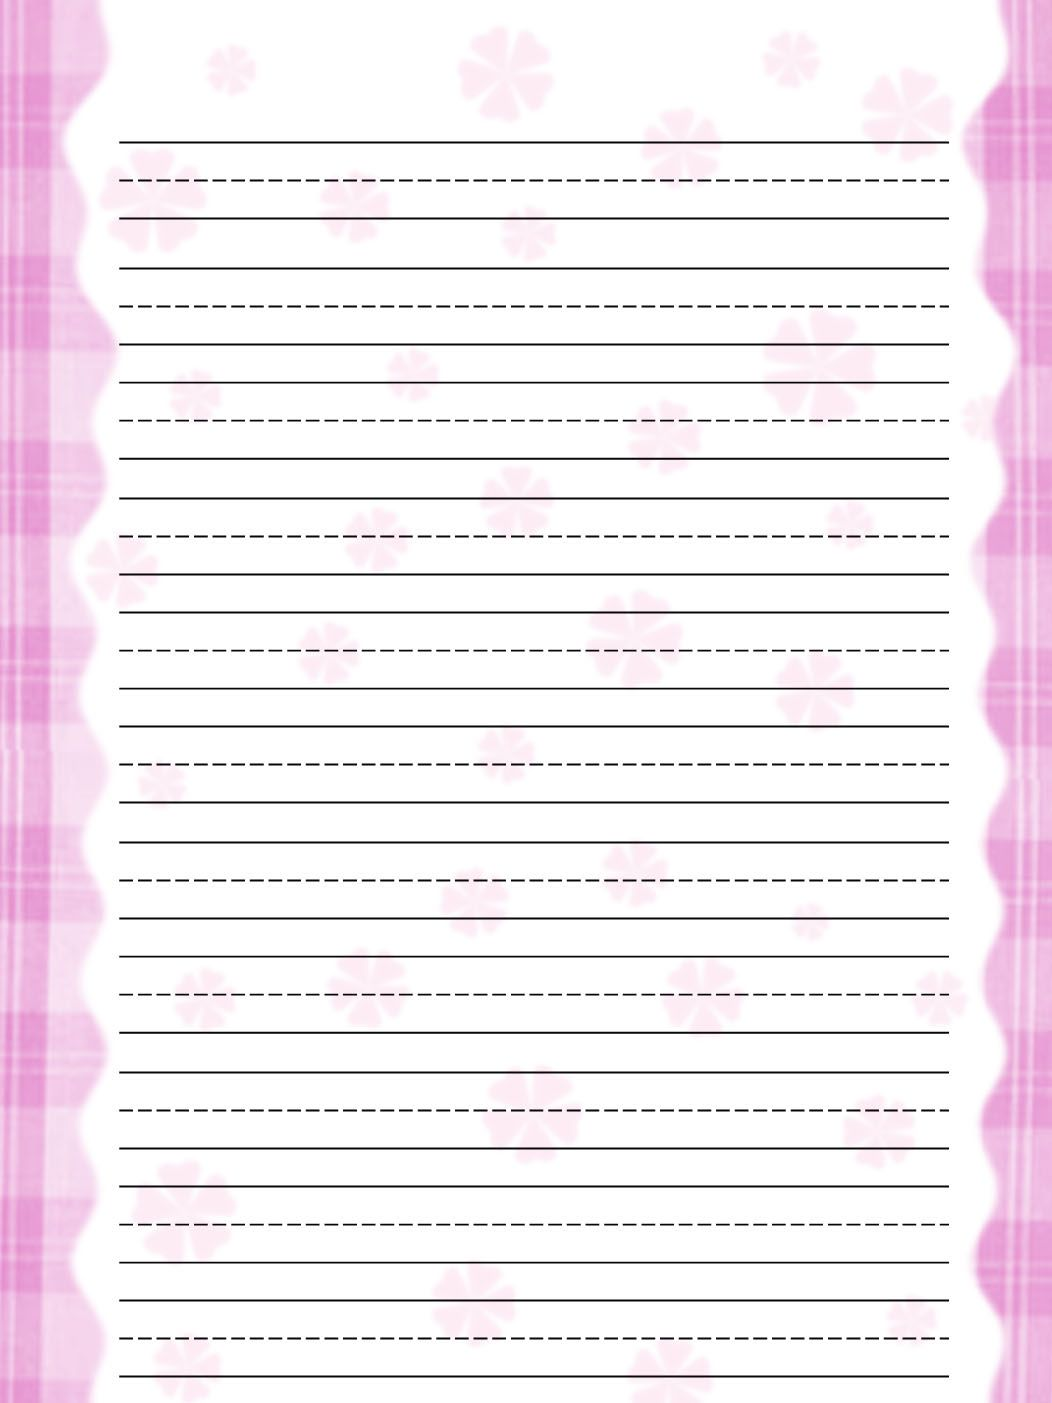 Free printable kids stationery free primary lined writing paper – Lined Paper Template Kids